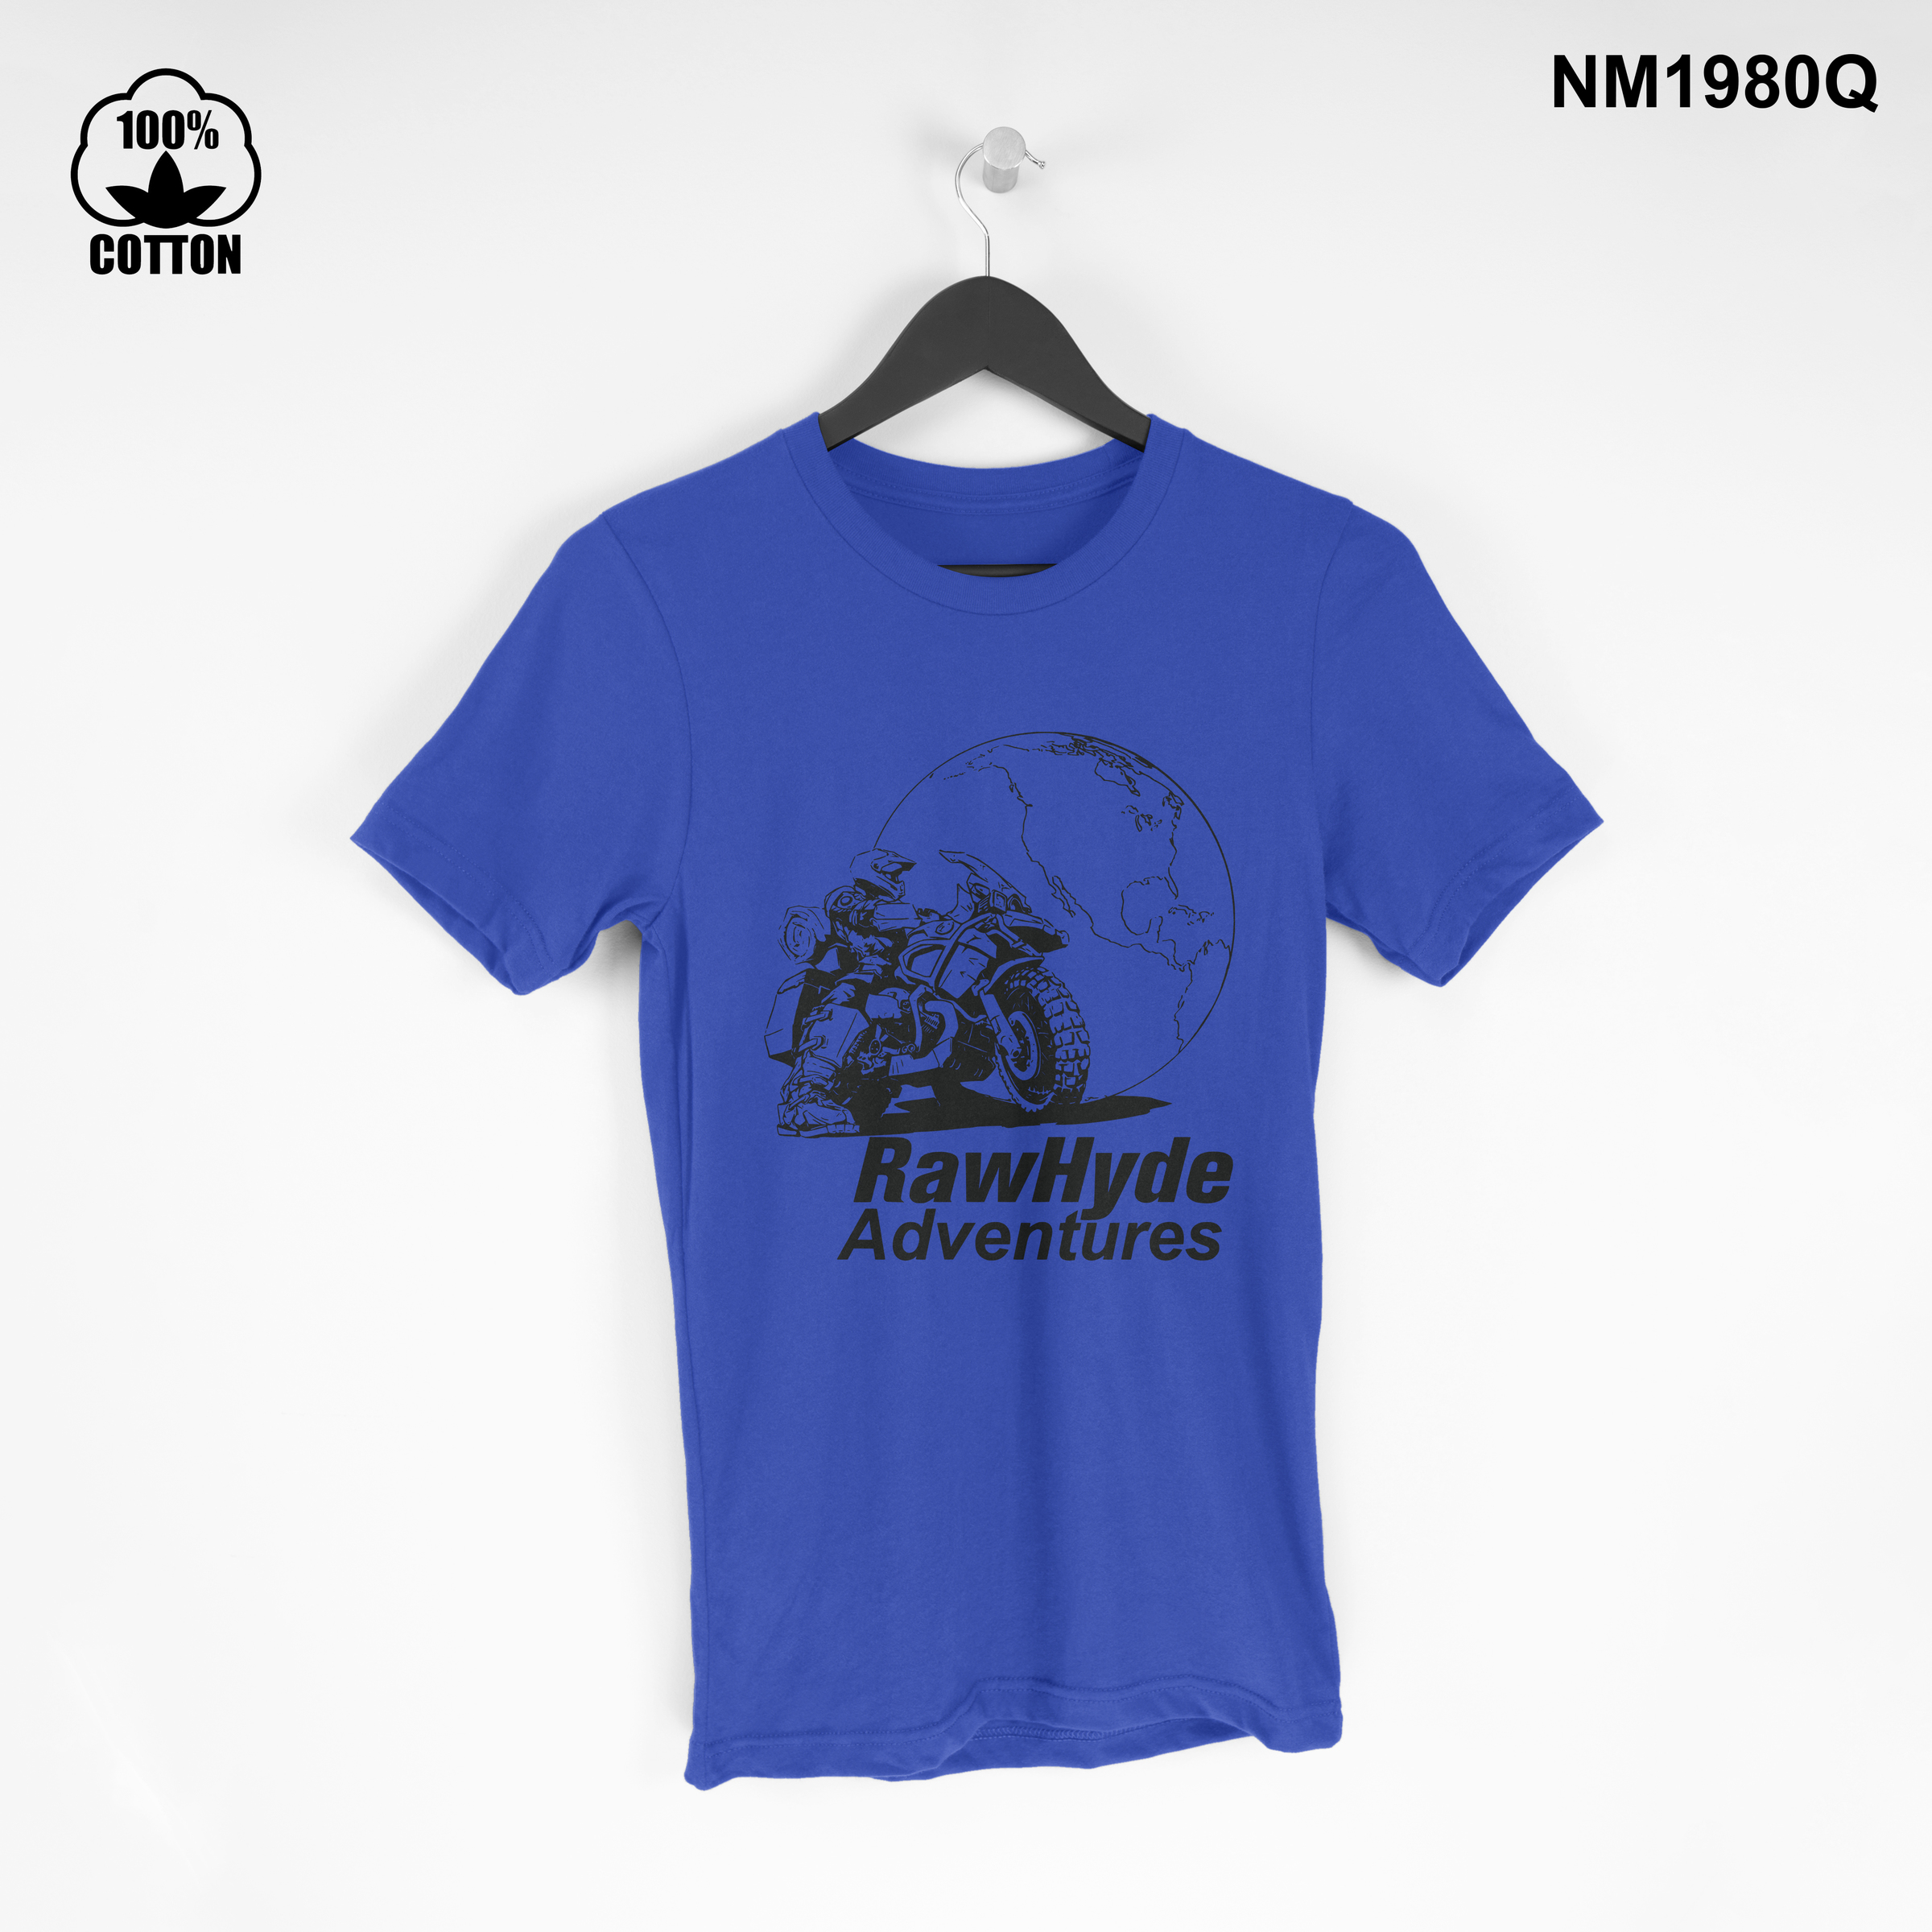 1.48 New Design Raw Hyde Adventures Idea From  BMW R1200GS In The World dodger blue.jpg